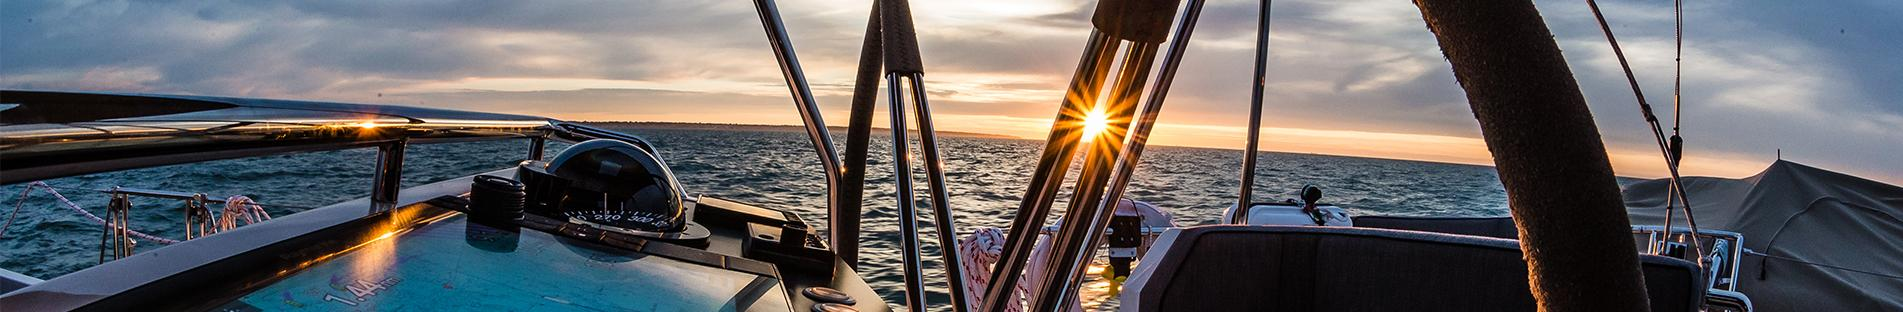 Helm Station on Oyster 1225 Sailing Superyacht